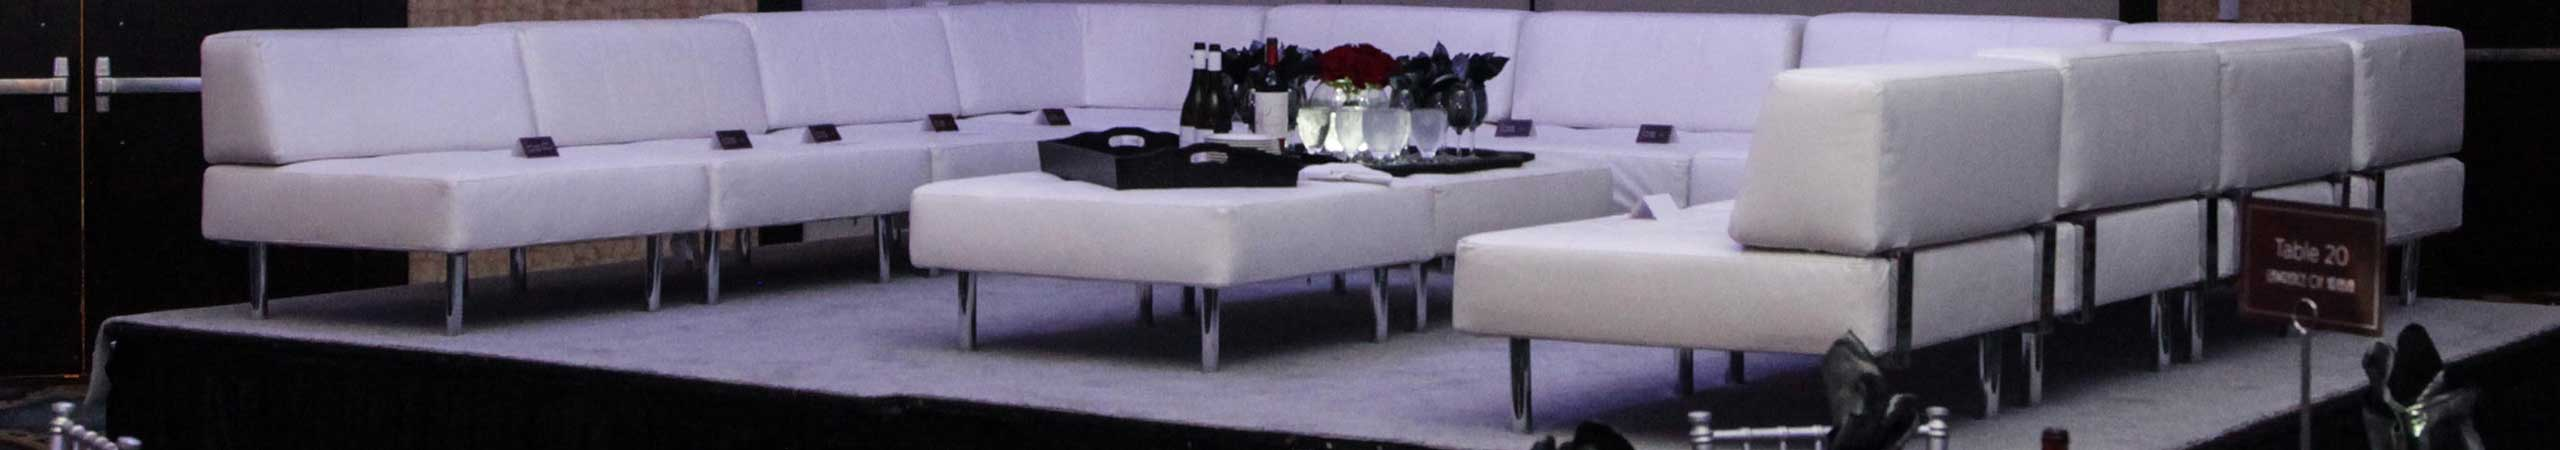 Jacksonville, Seating Event Furniture Rentals